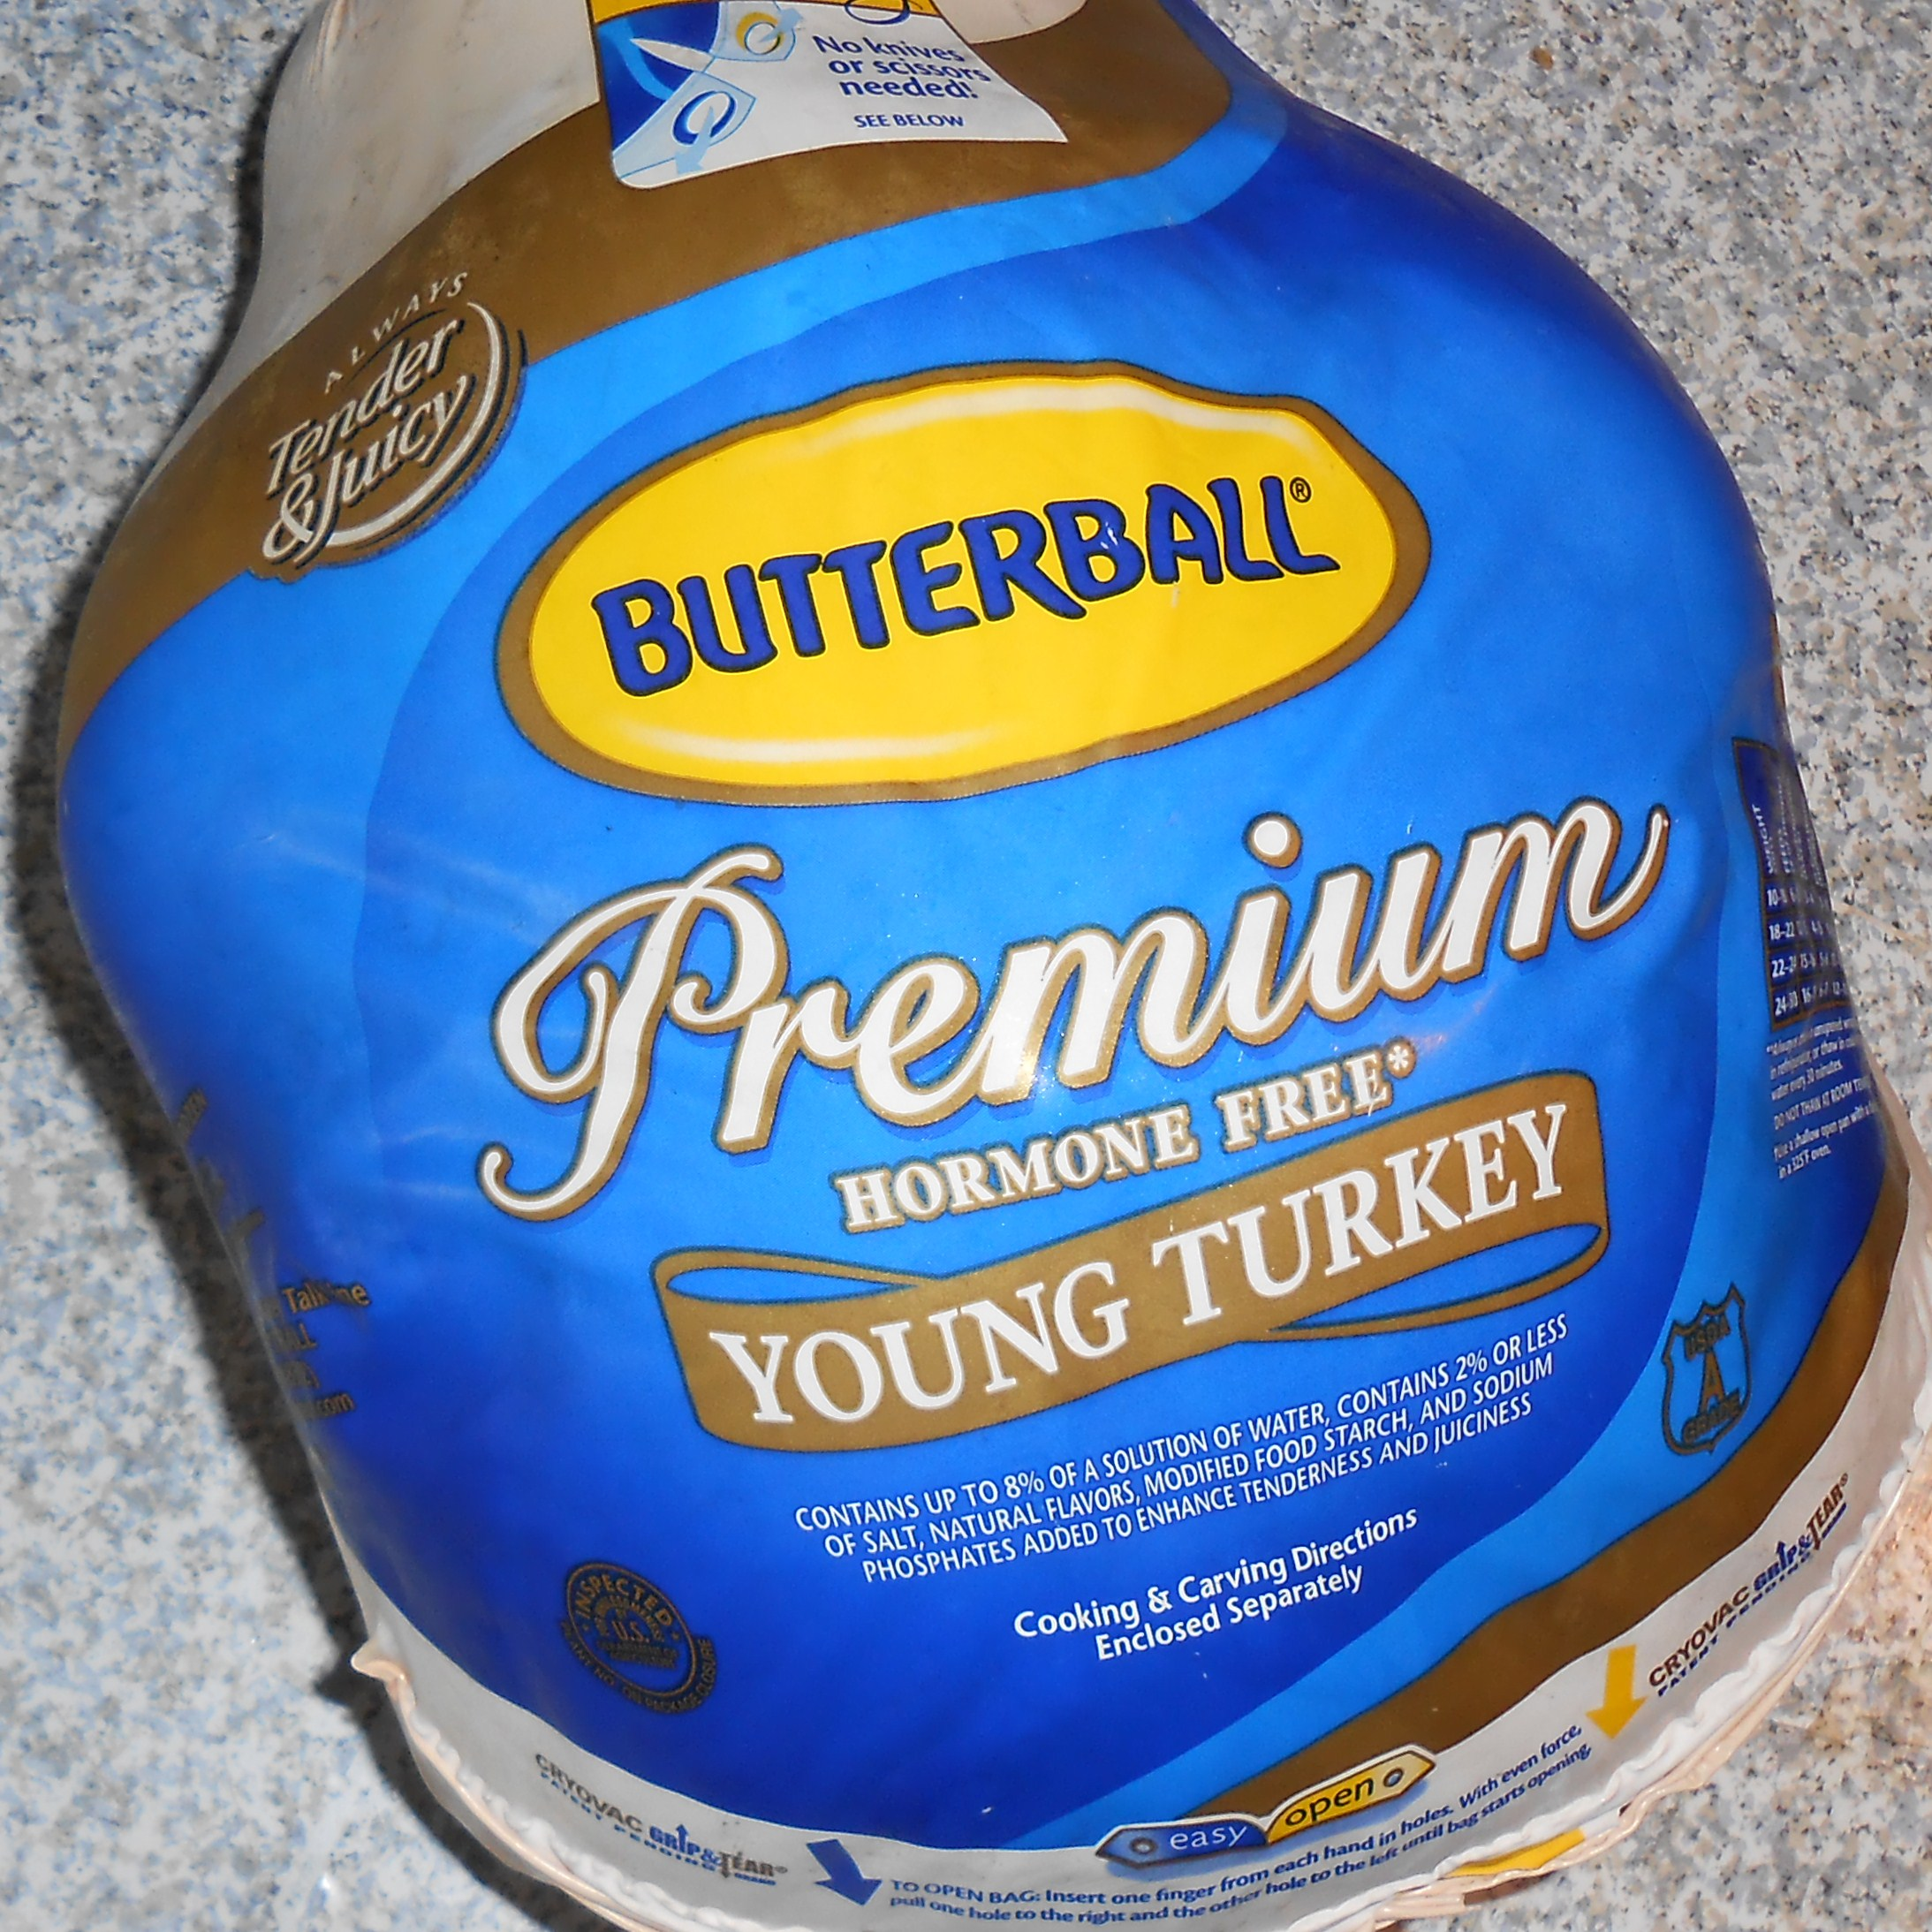 Butterball, LLC is an equal opportunity employer and is committed to the fair and impartial treatment of all employees and applicants for employment without regard to gender, age, race, religion, color, national origin, physical or mental disability, military/veteran status, sexual orientation, gender identity and expression, genetic information, marital status, parental status, pregnancy, or.